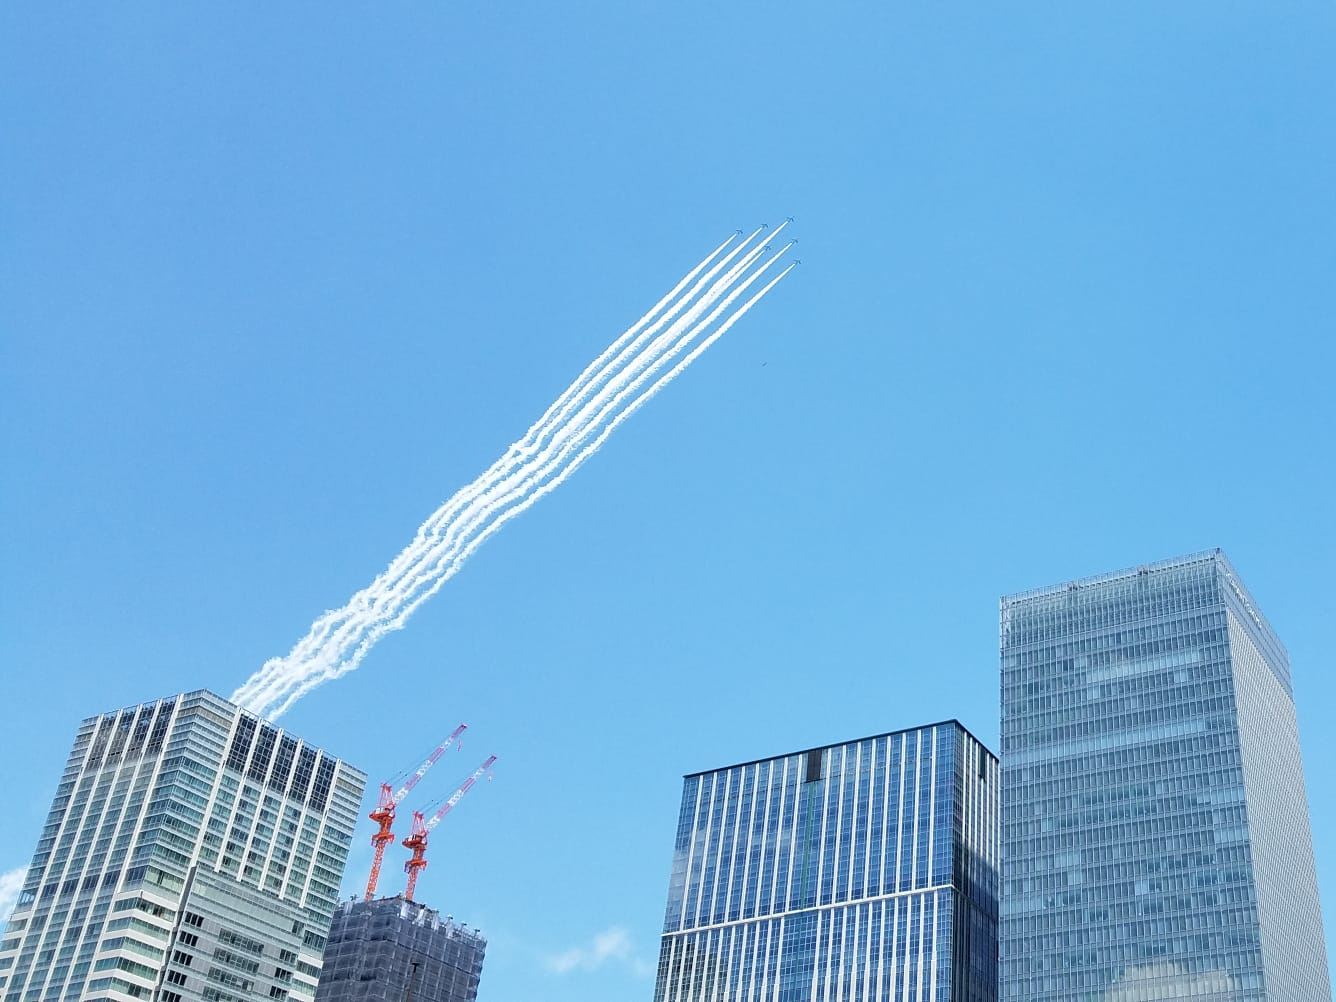 Blue Impulse (ブルーインパルス, Burū Inparusu), the aerobatic demonstration team of the Japan Air Self-Defense Force (JASDF), flies over Tokyo on 29 May 2020 to thank healthcare workers fighting the novel coronavirus COVID-19